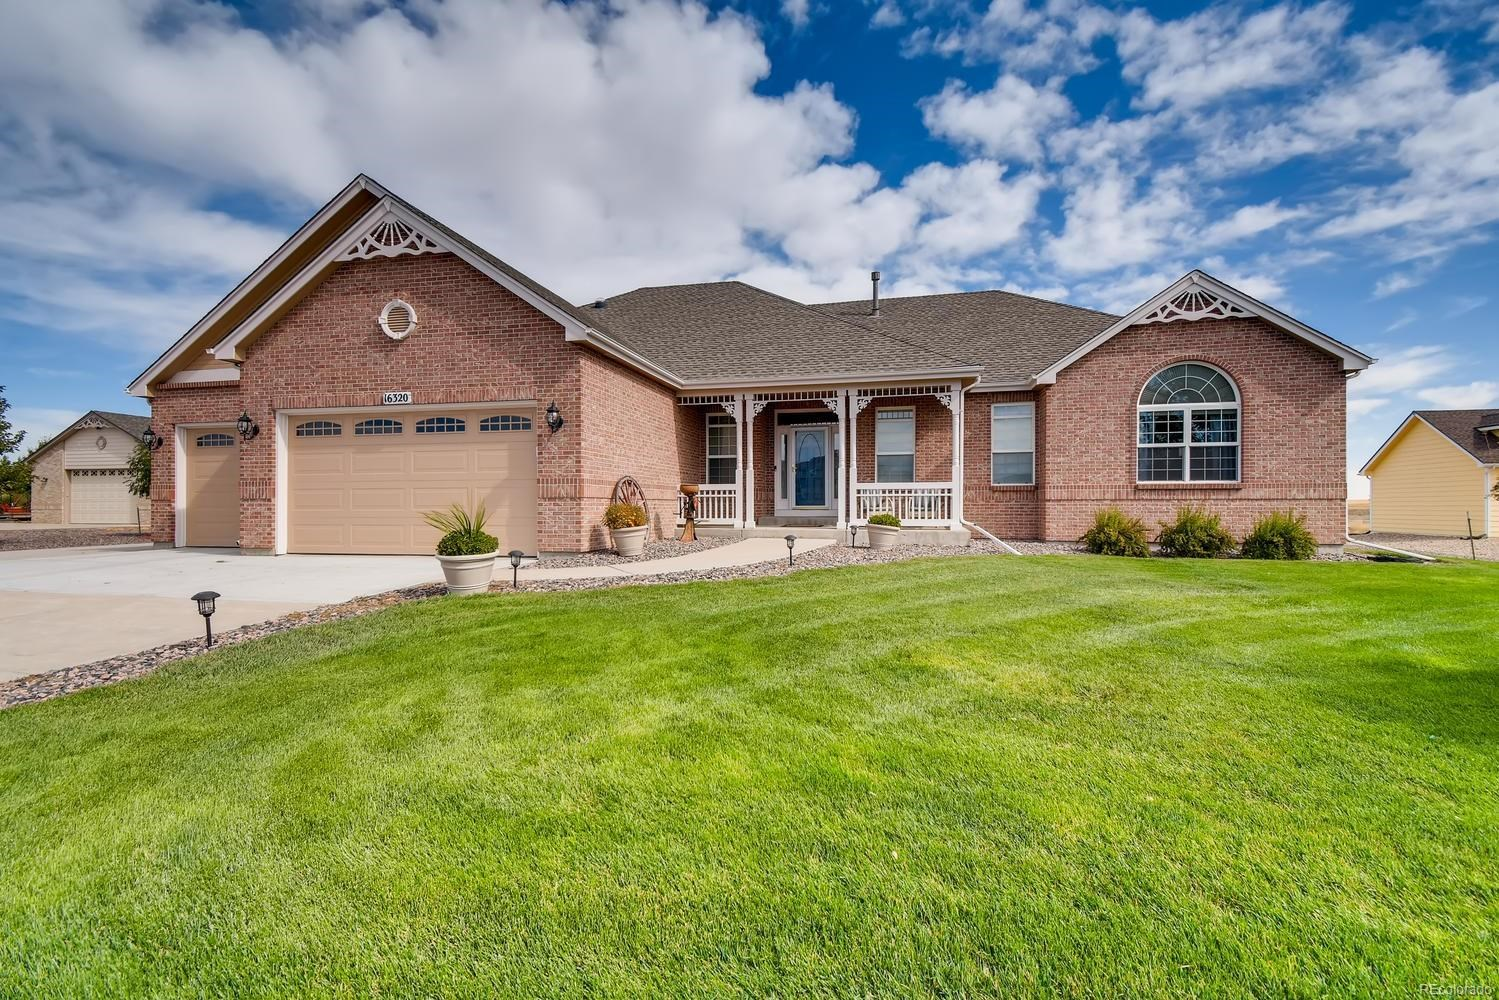 MLS# 6605938 - 2 - 16320 Timber Cove Street, Hudson, CO 80642